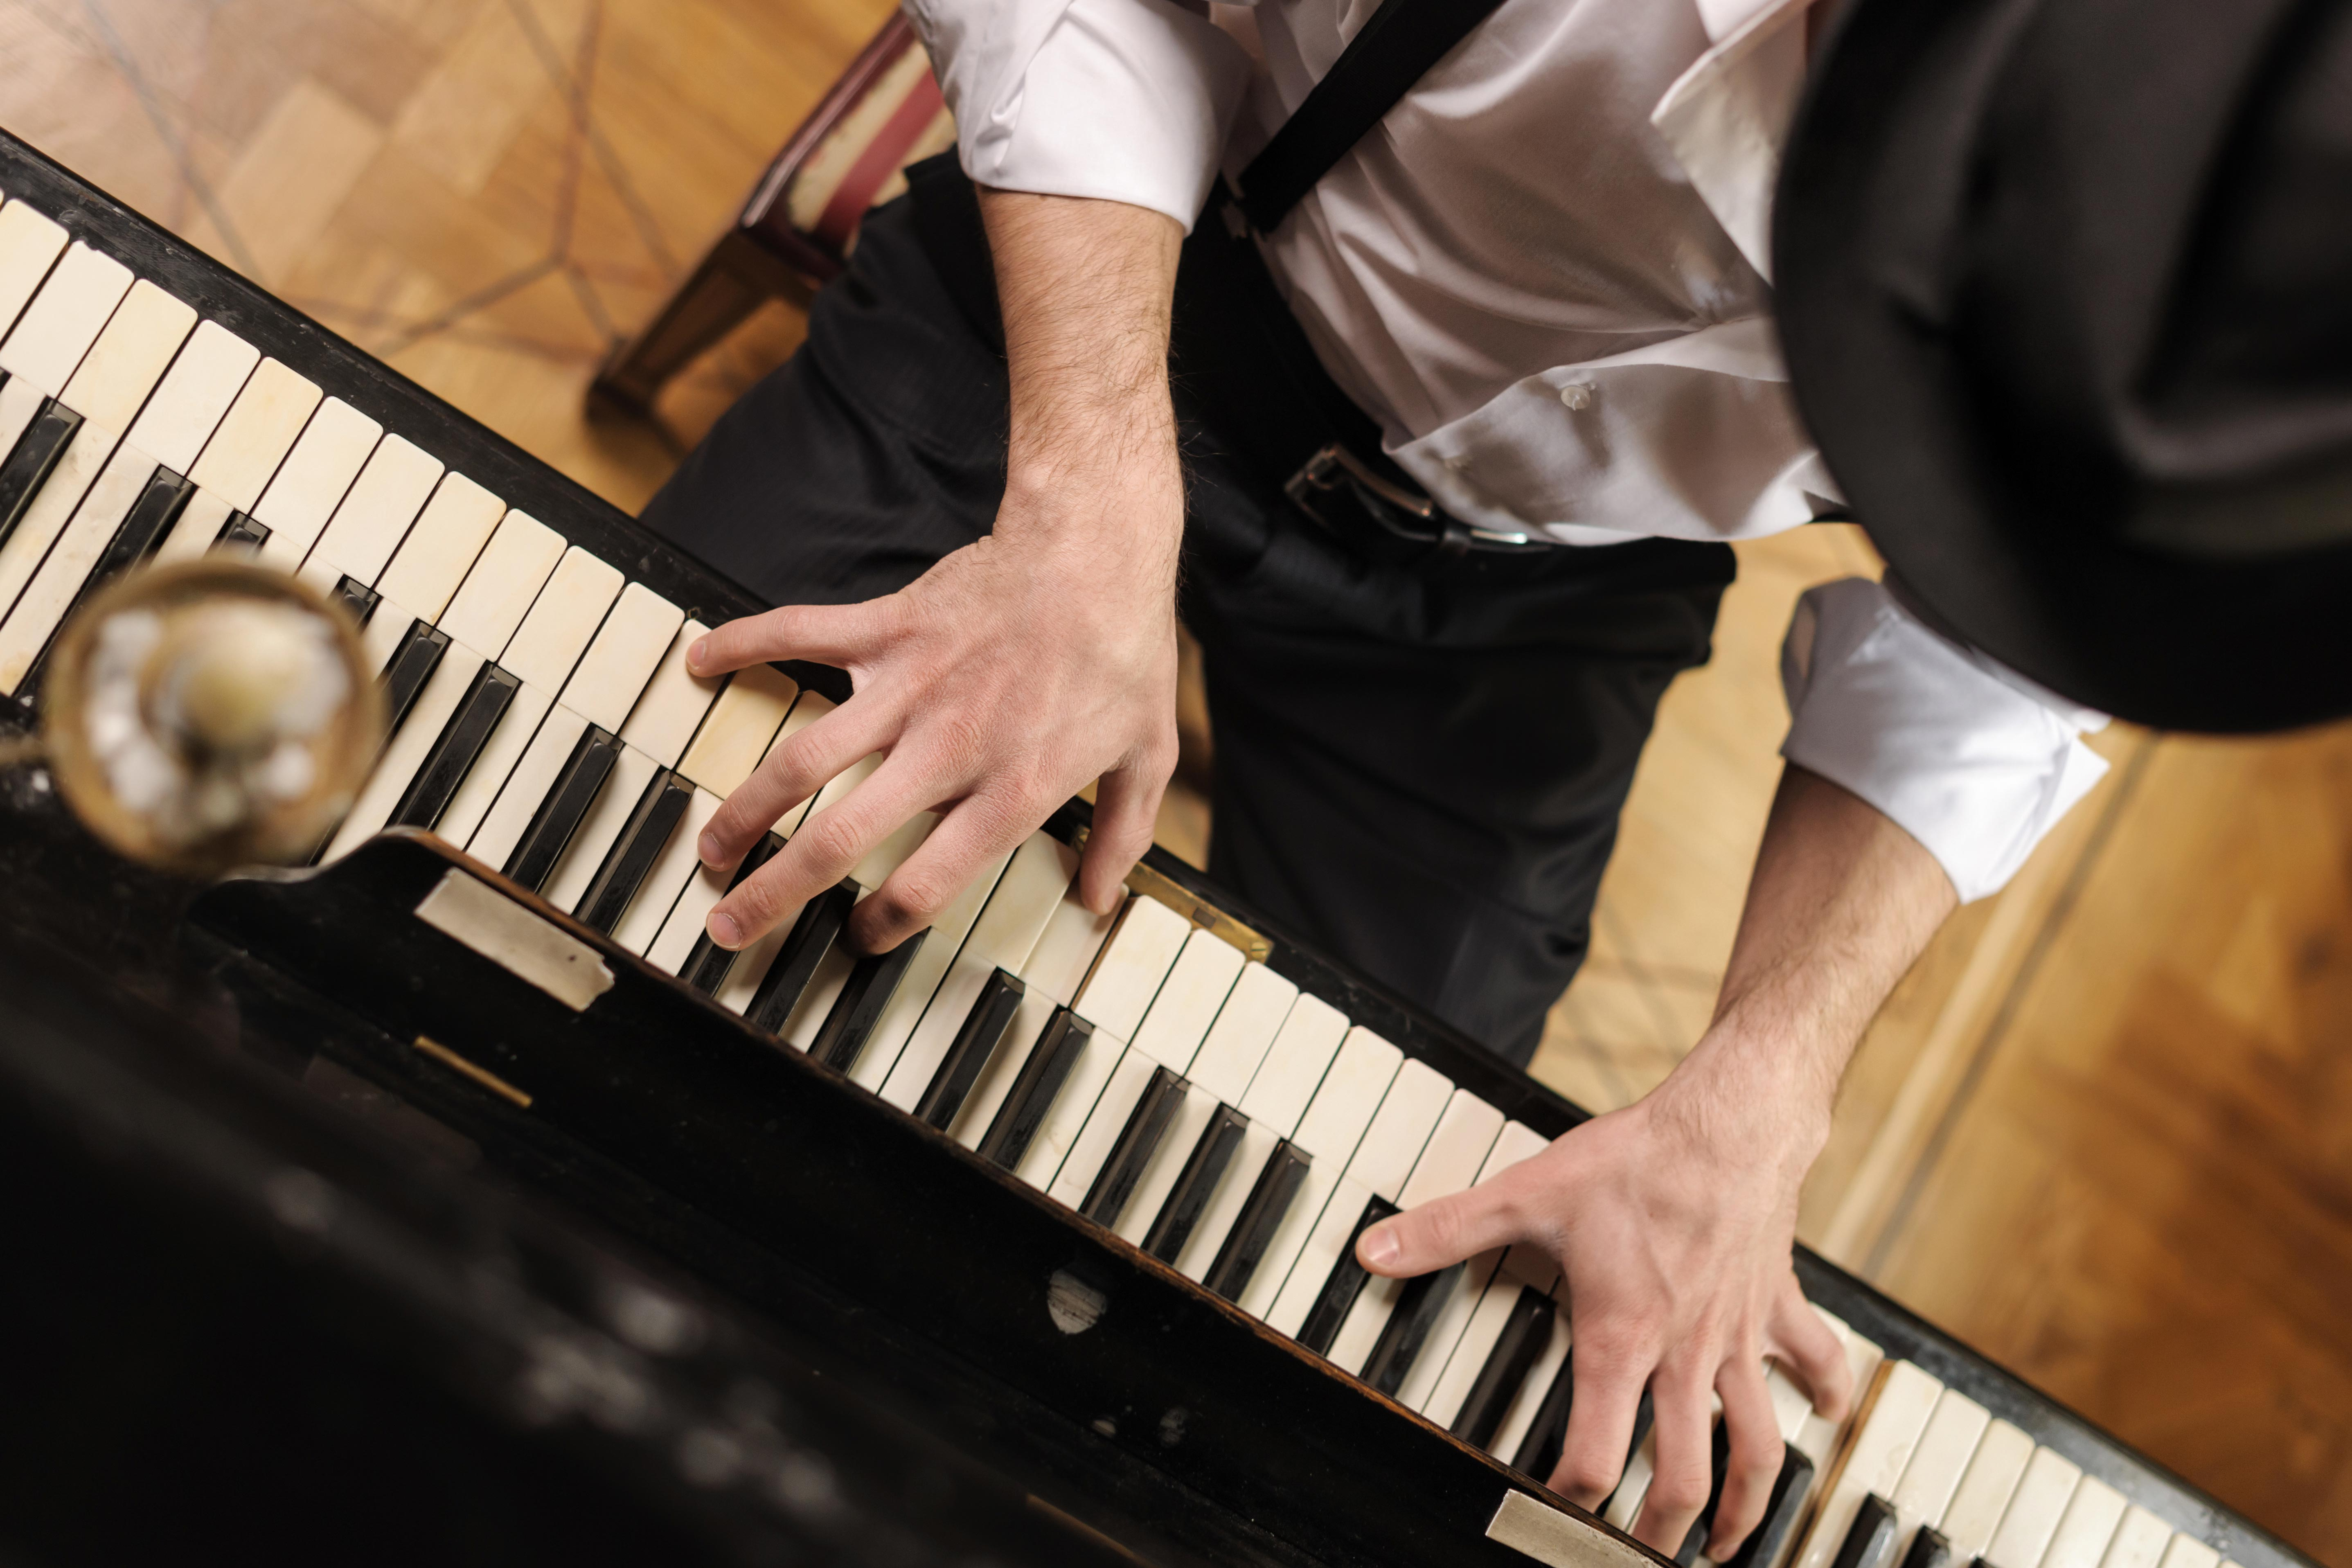 I do not want anything like playing the piano Teach you